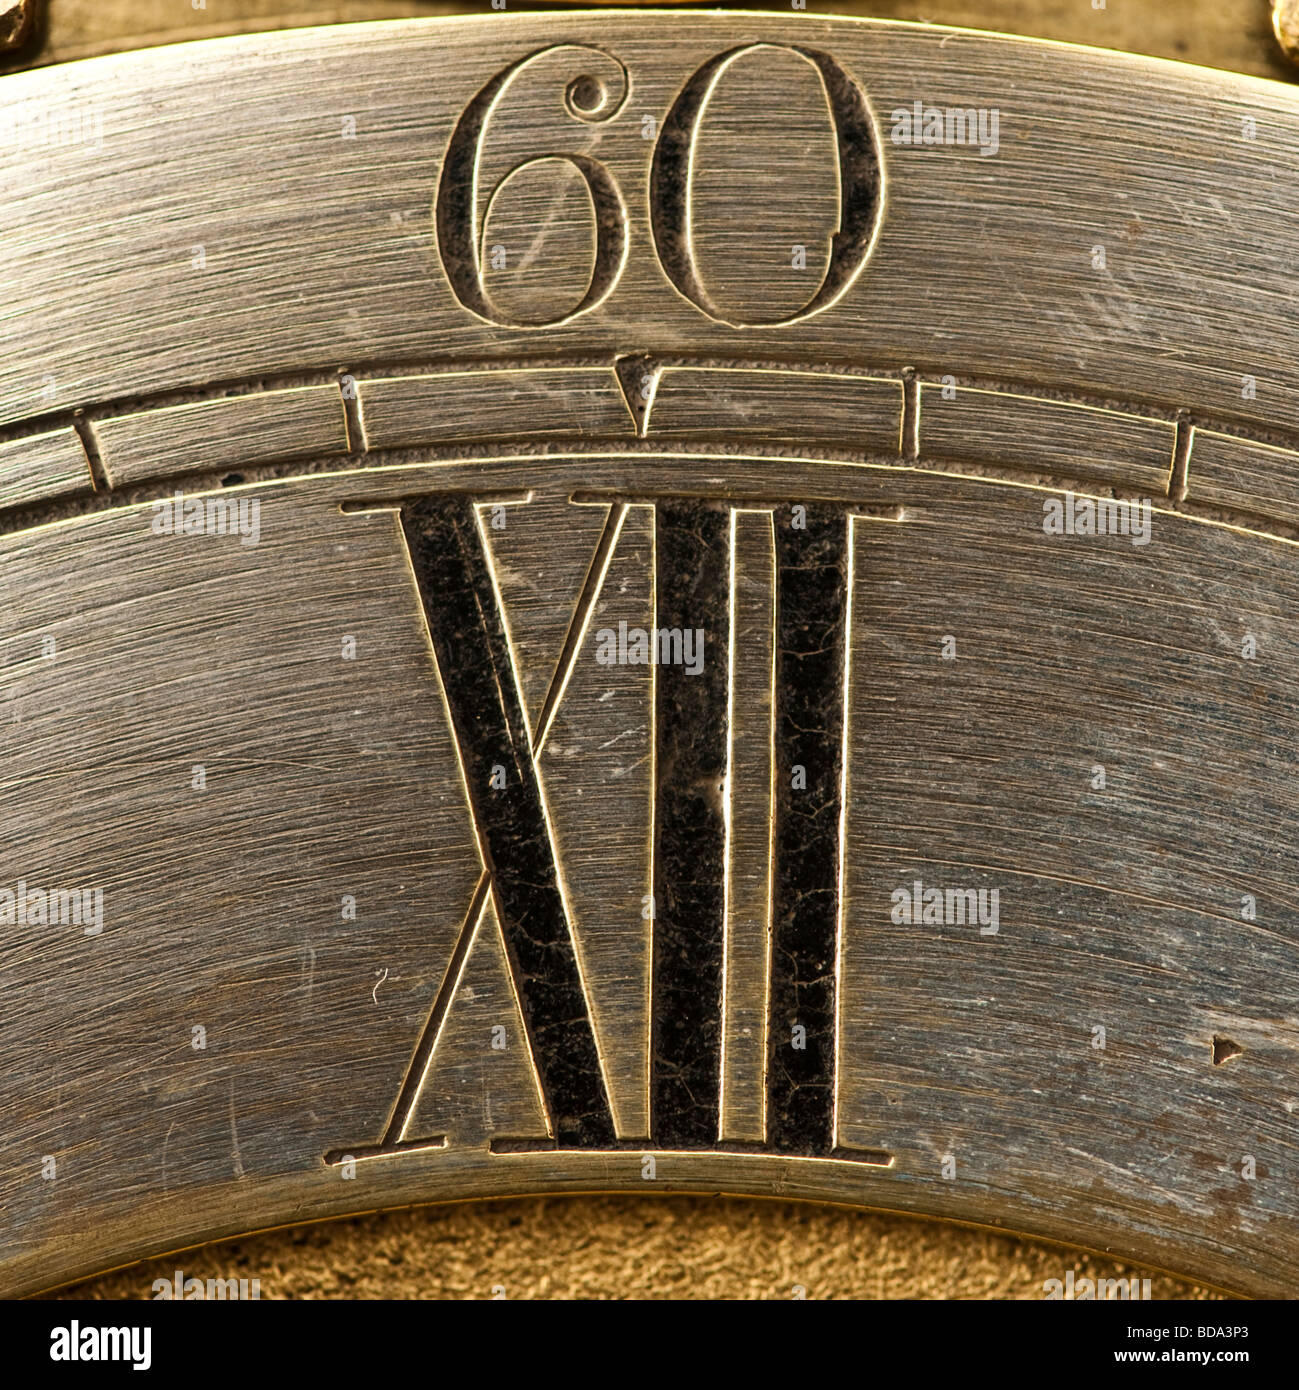 old antique clock face showing 60 and XII - Stock Image